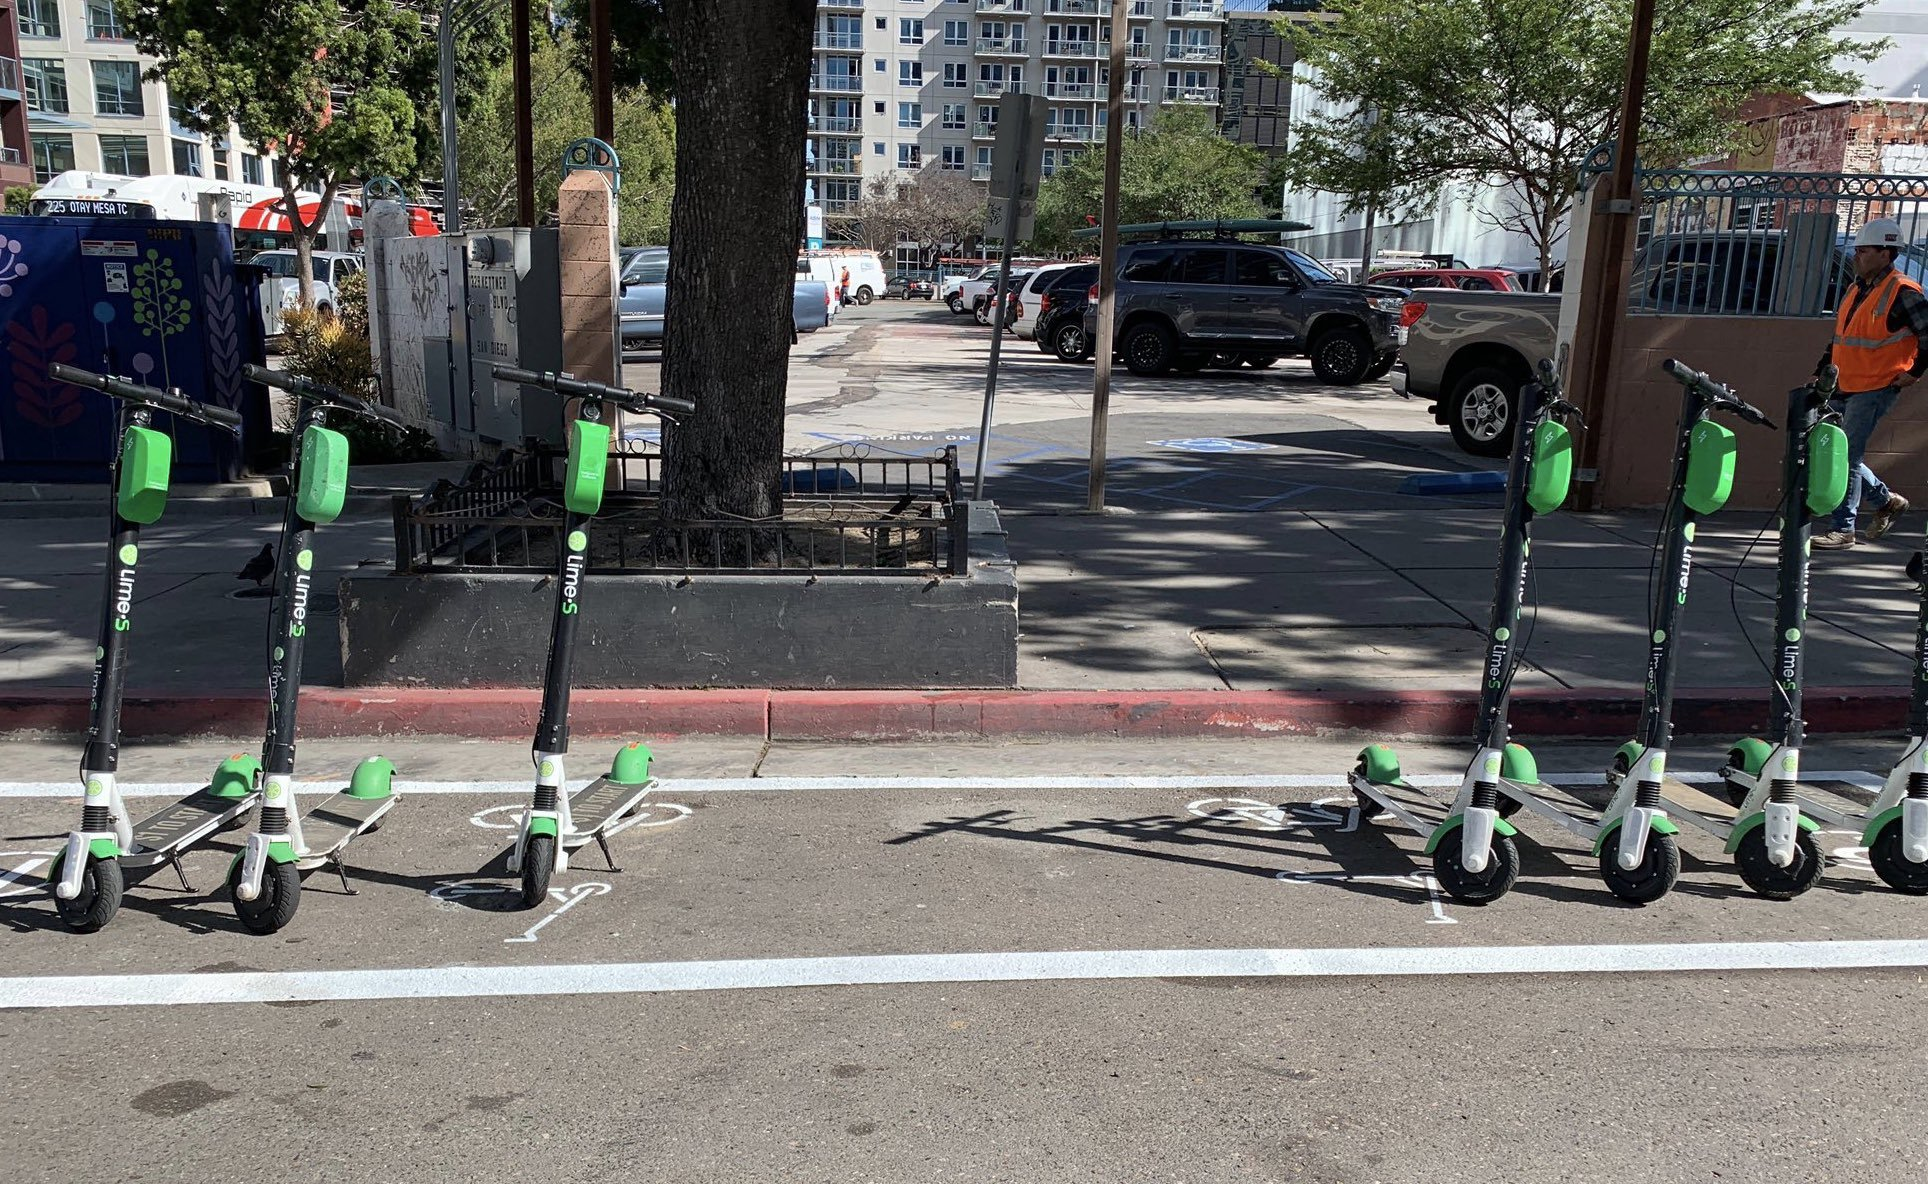 Dockless bikes parked in a dedicated scooter corral on a street.